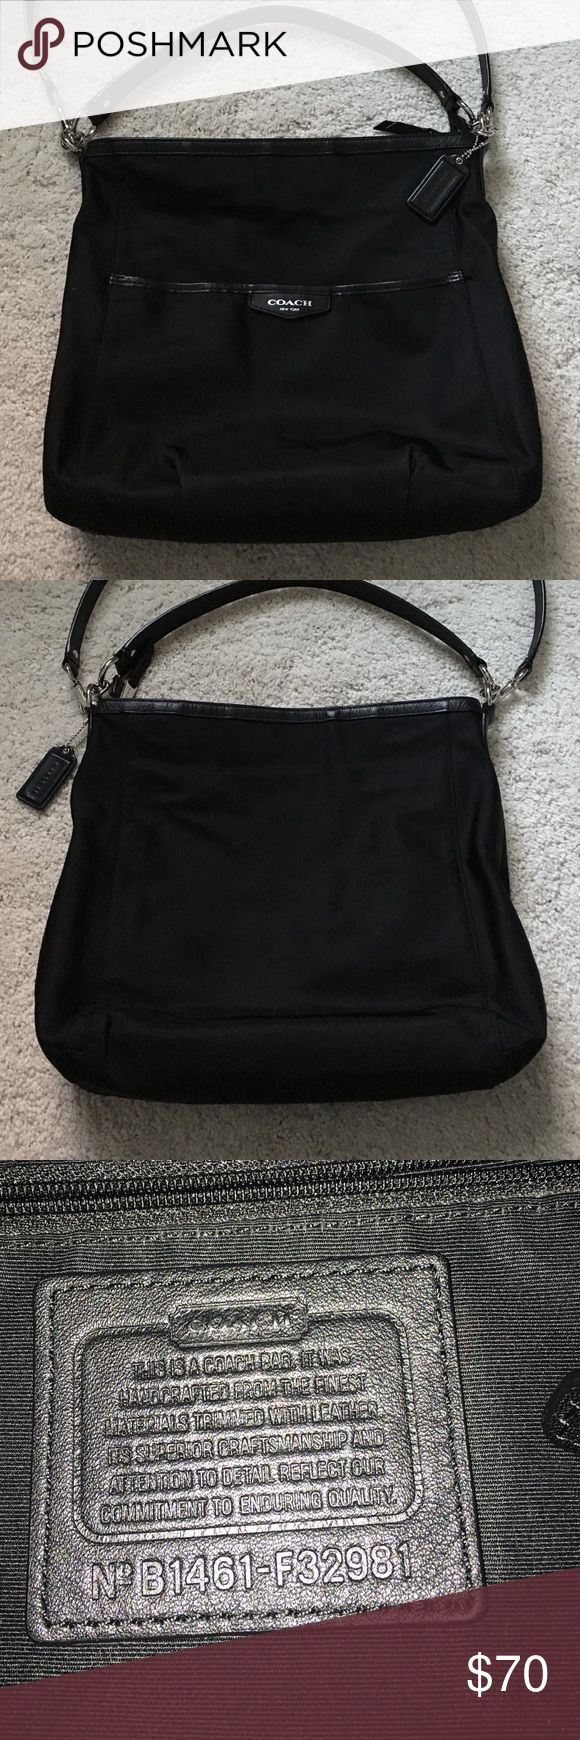 Authentic Coach purse Authentic, black Coach purse. Has short and long strap. Gently used, great condition. Inside and outside of purse clean and in great condition. No rips or tears in fabric. Leather on purse and straps in great condition. Coach Bags